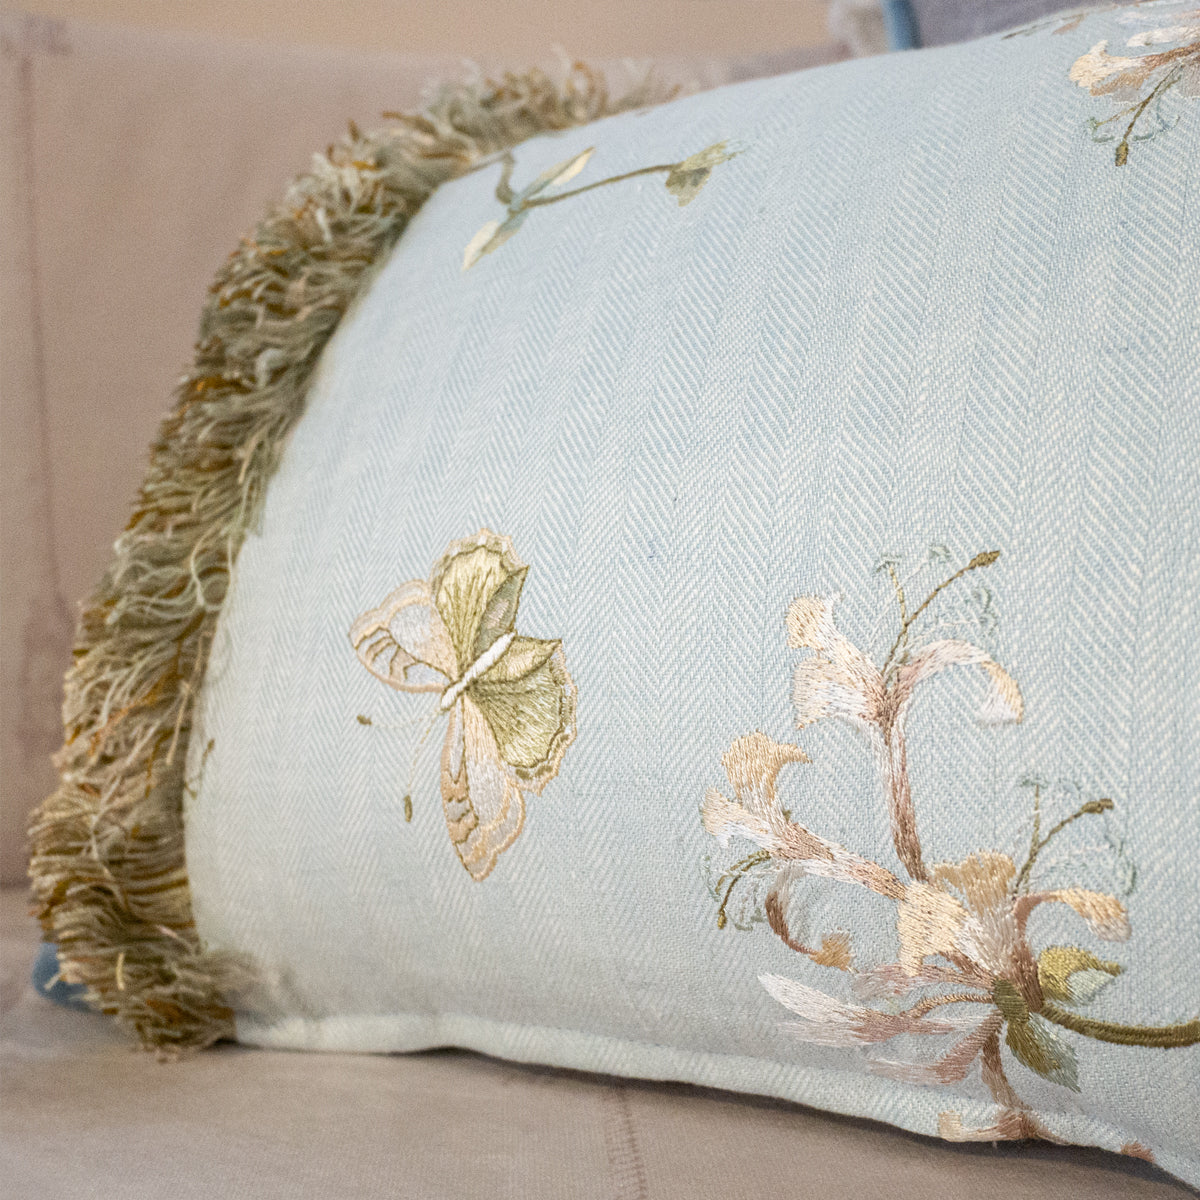 47x32cm角 コラージュクッション Colefax&Fowler Blue Honeysuckle with Fringe